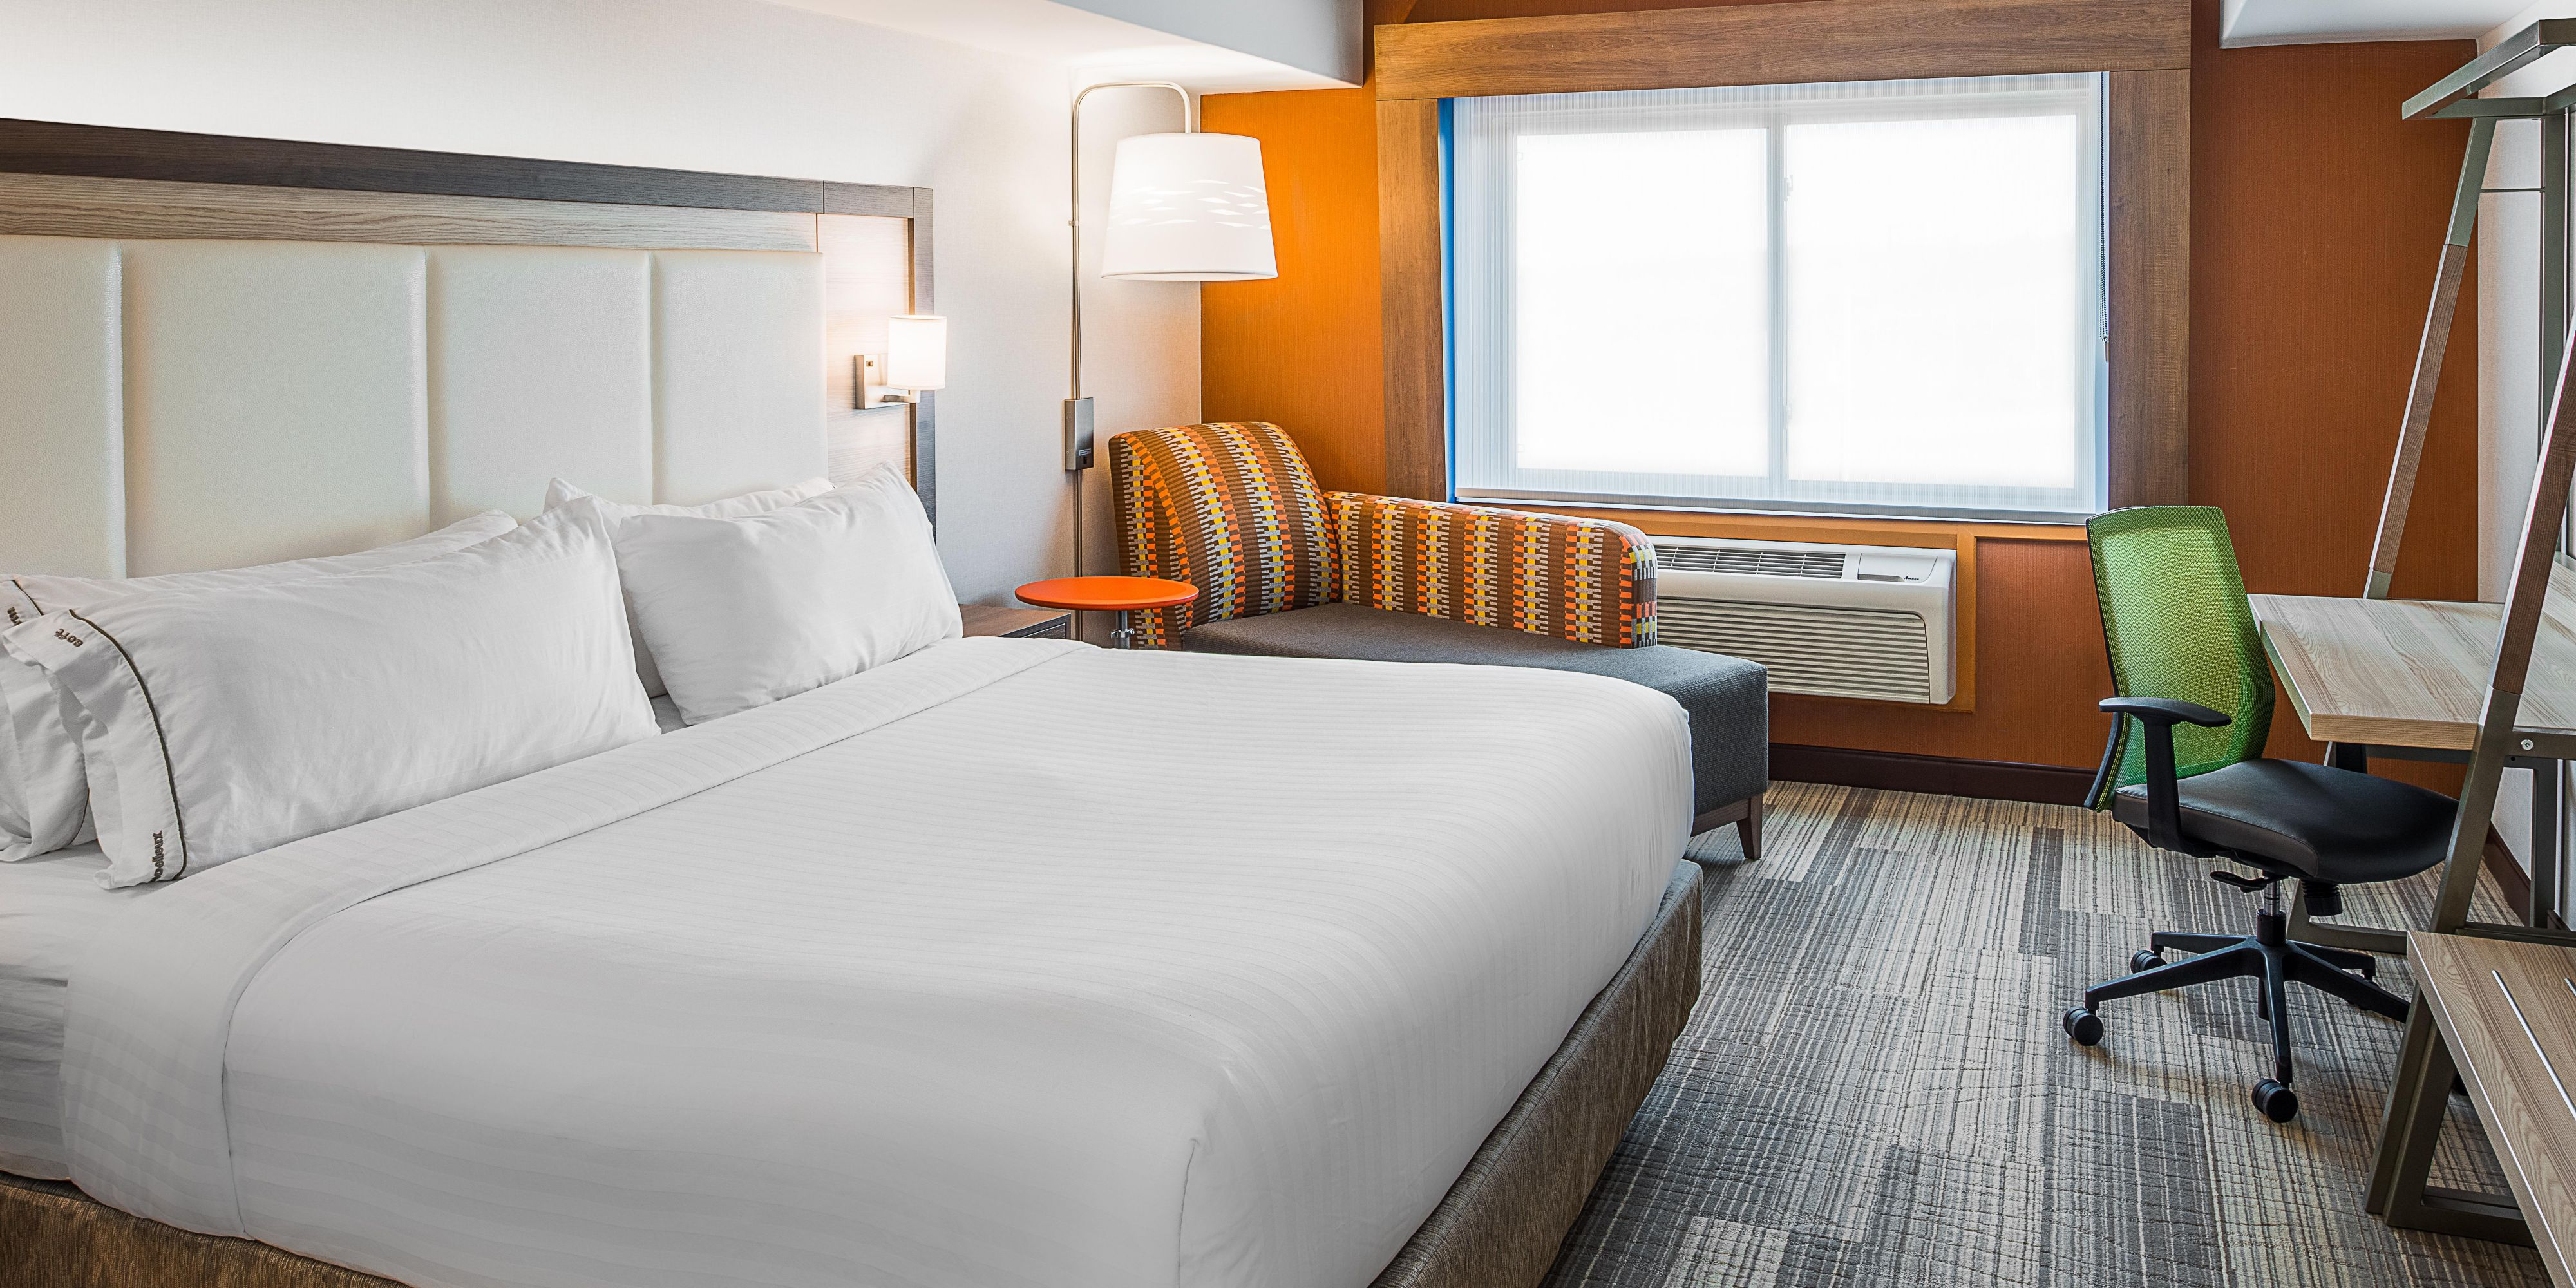 Holiday Inn Express & Suites Halifax - Bedford Hotel by IHG